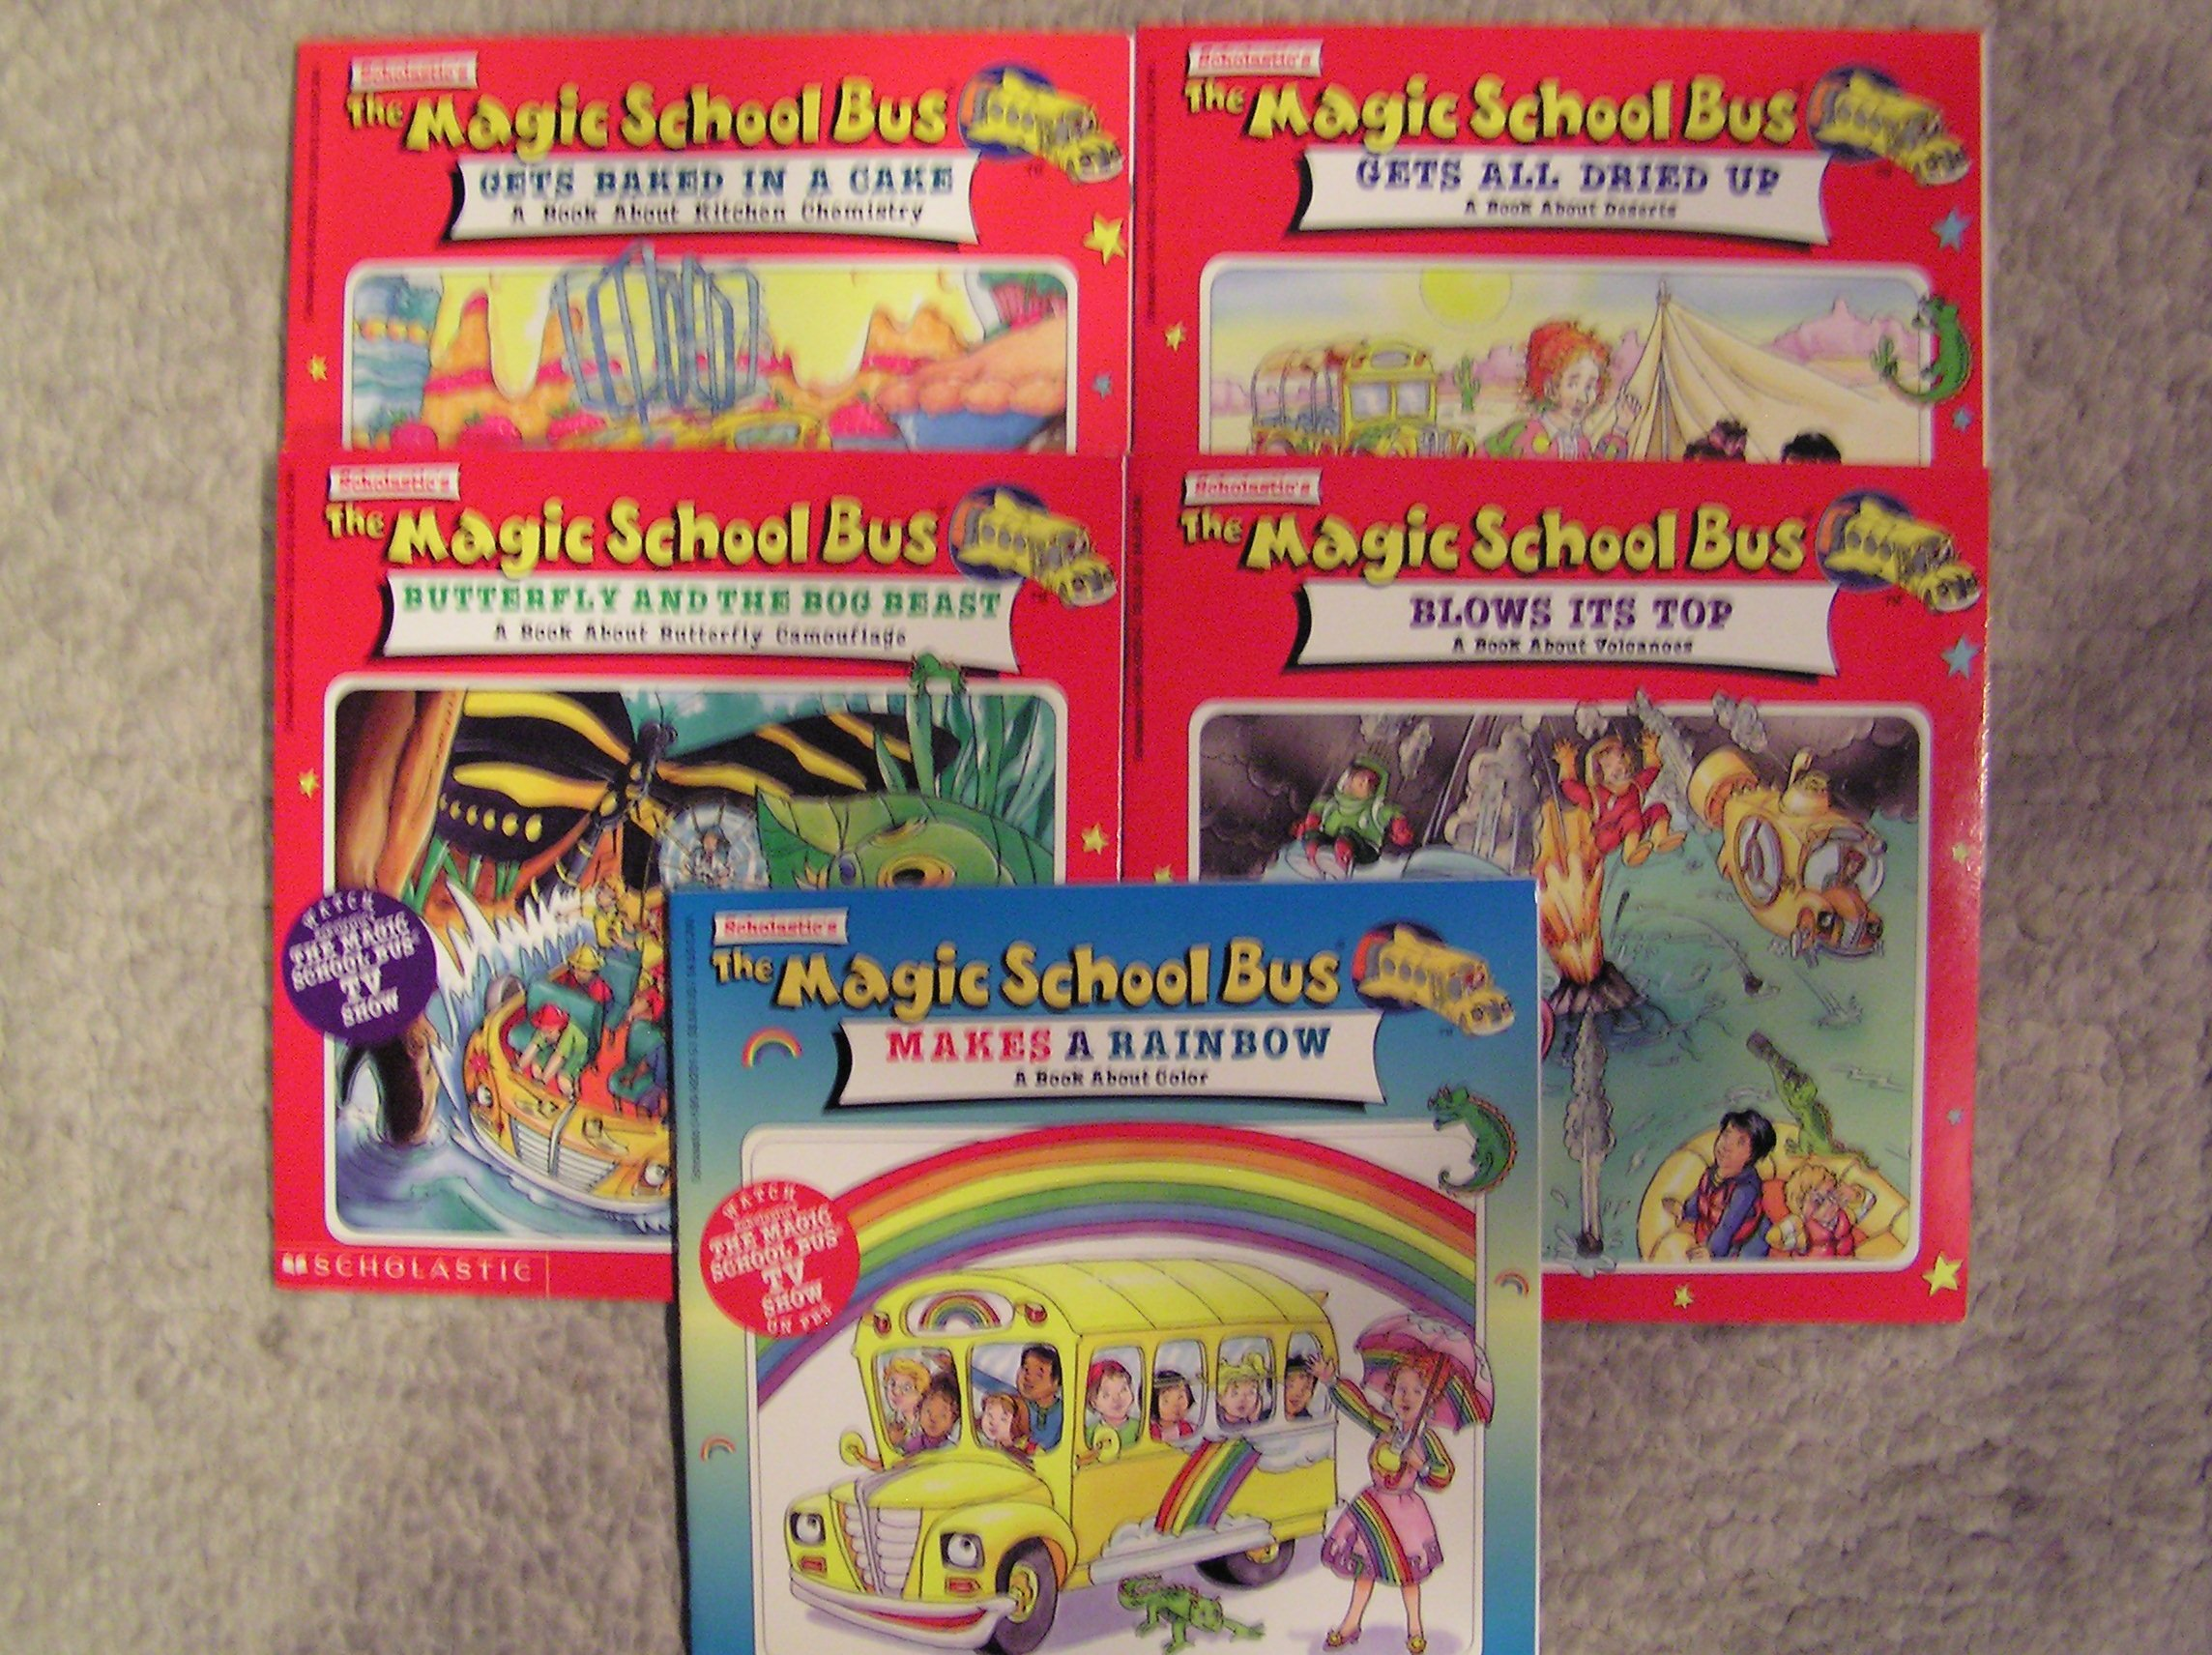 Magic School Bus Makes A Rainbow Butterfly And The Bog Beast Gets